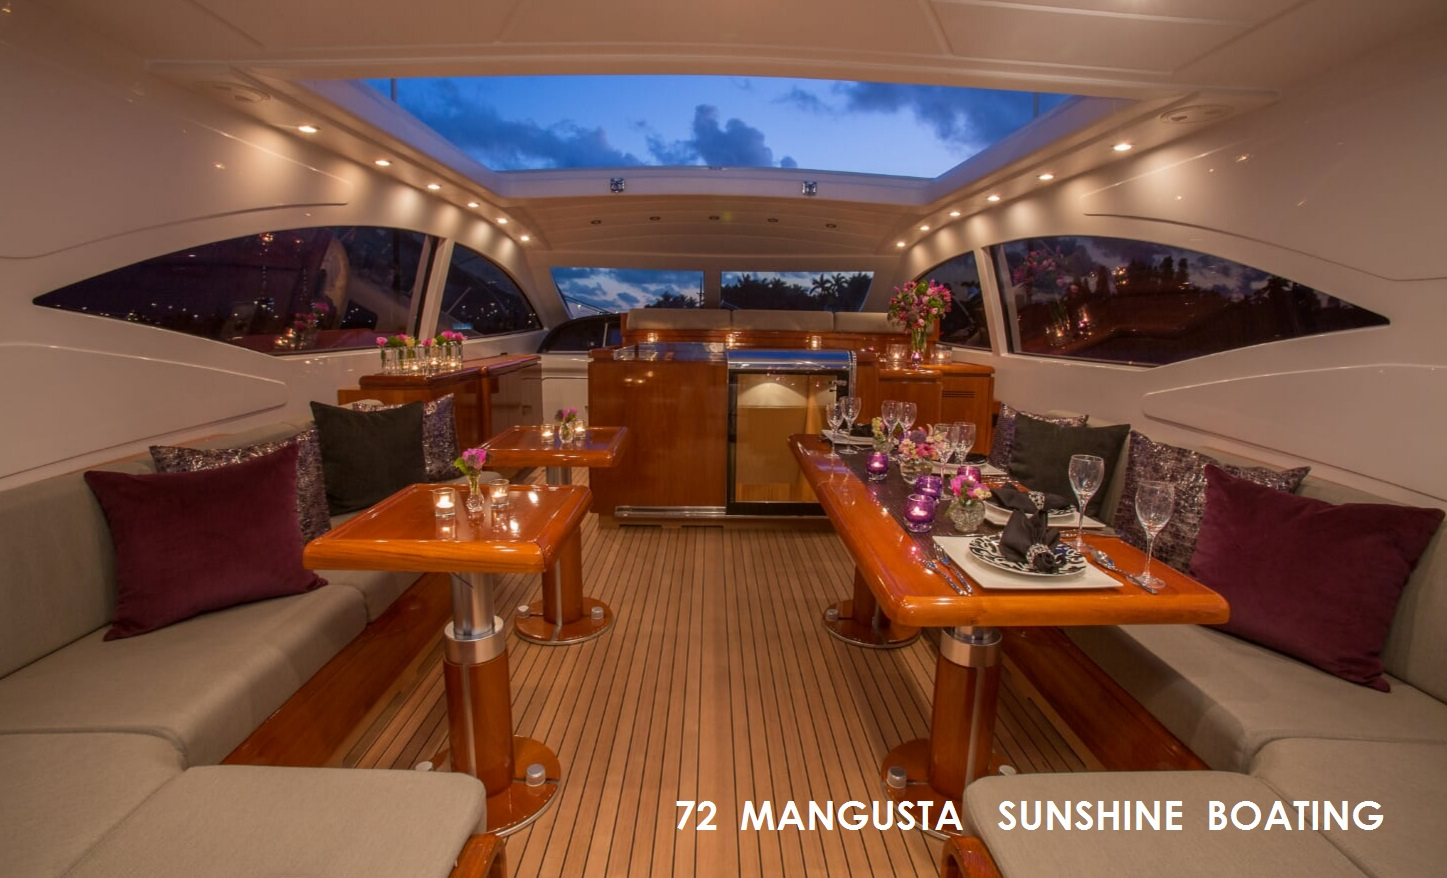 sunshine-boating-manusta-72-m